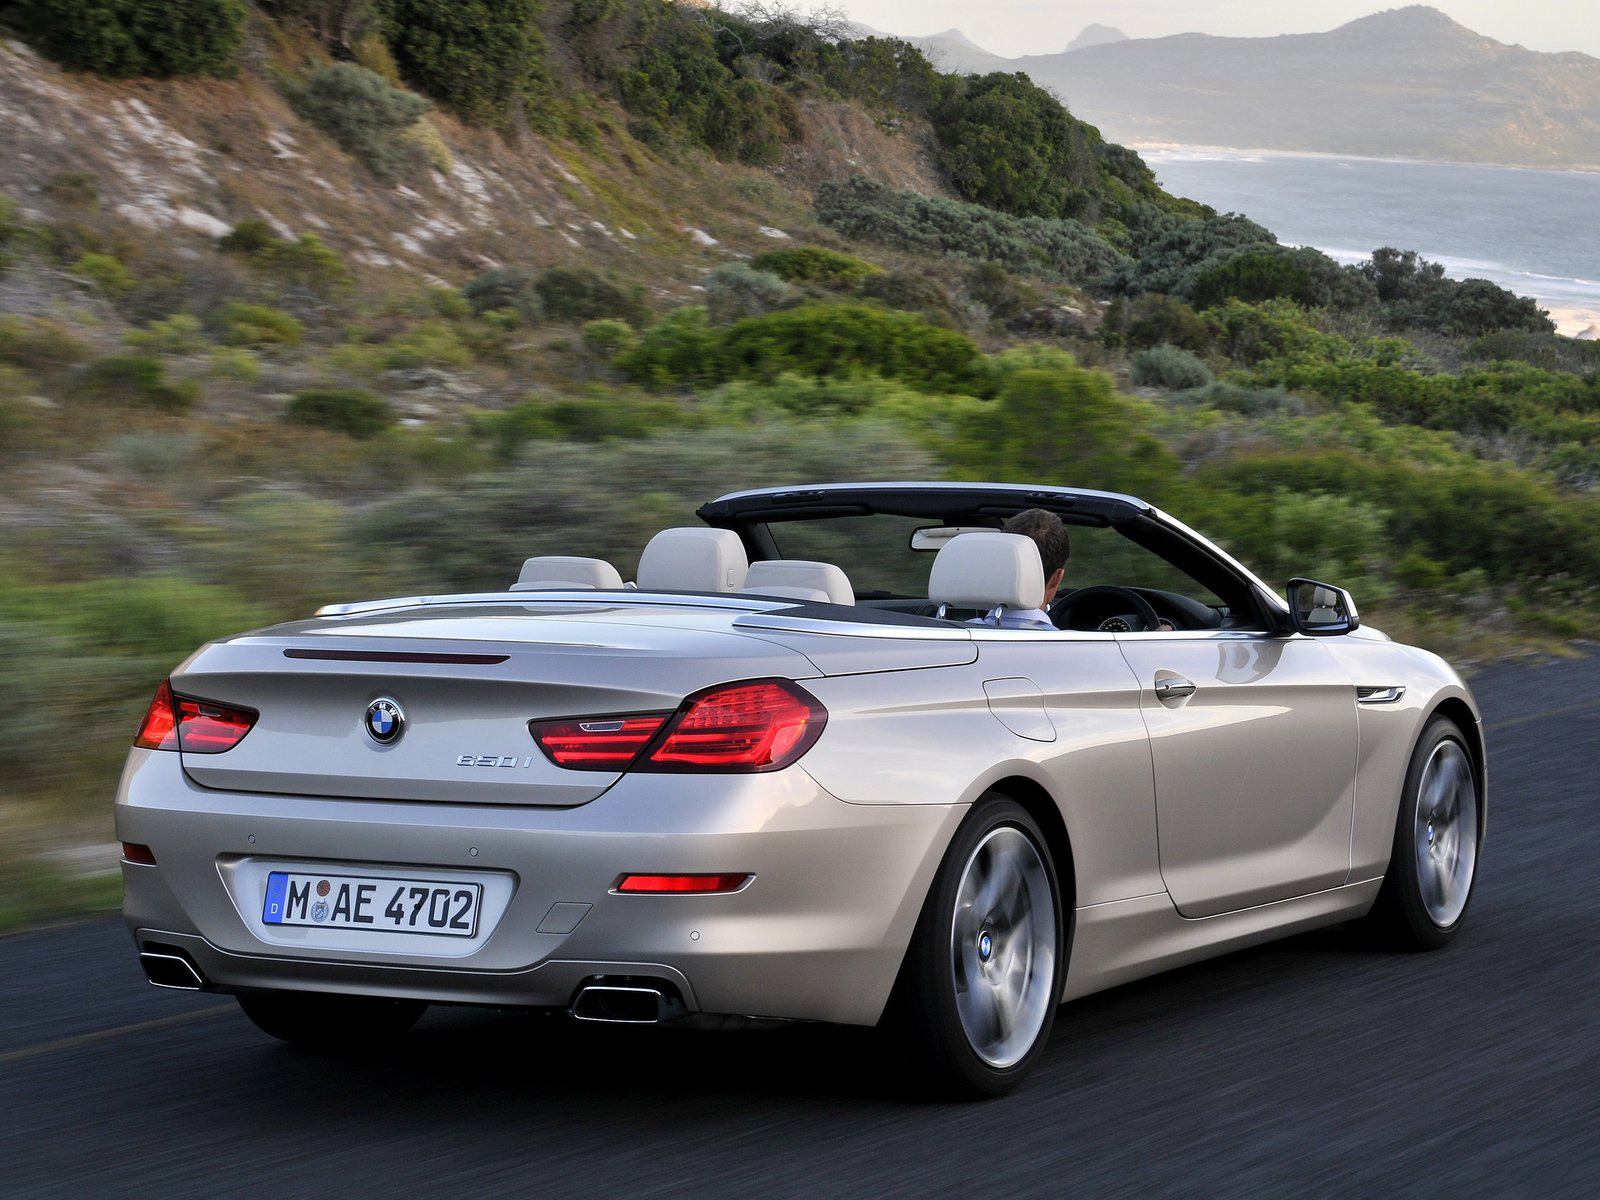 2012 bmw 6 series convertible bmw automotive pictures. Black Bedroom Furniture Sets. Home Design Ideas